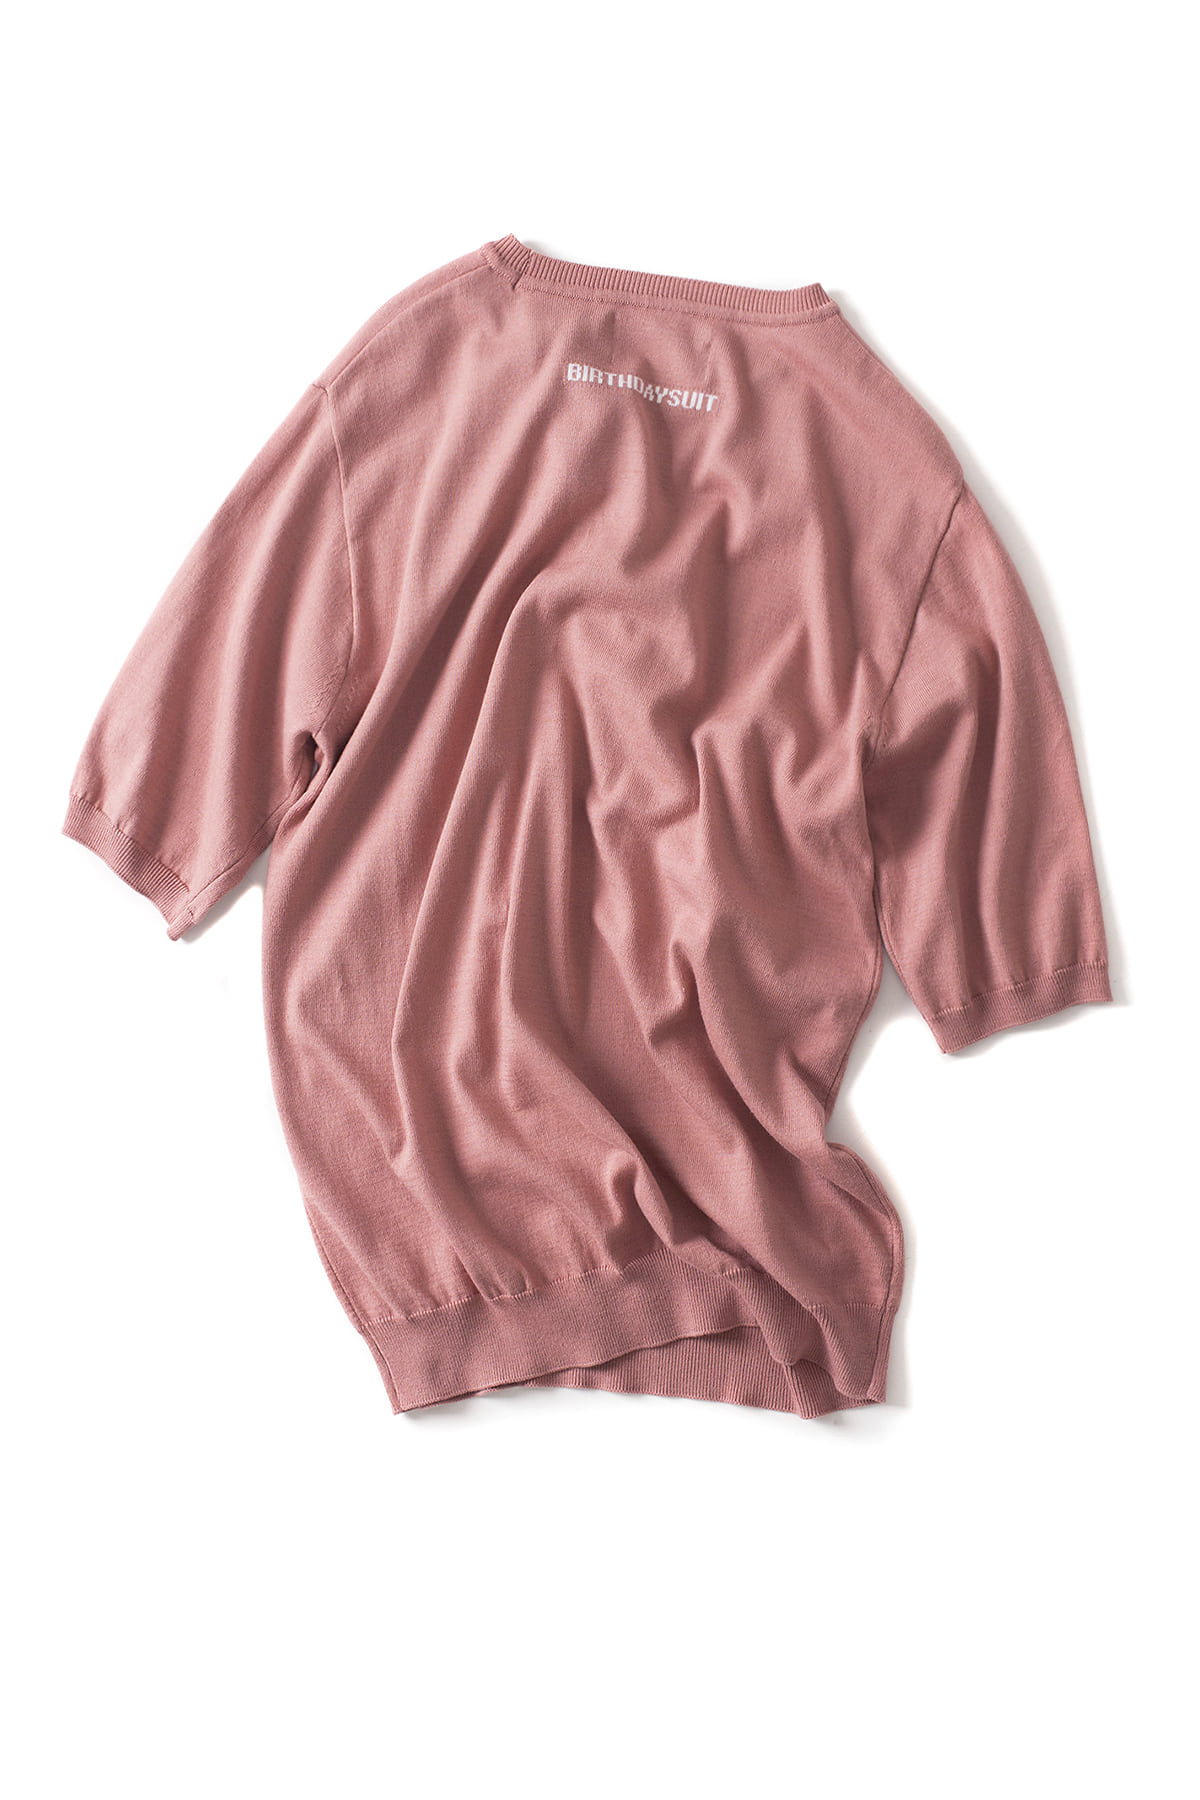 BIRTHDAYSUIT : Back Logo Modal R.Neck Knit (L.Pink)